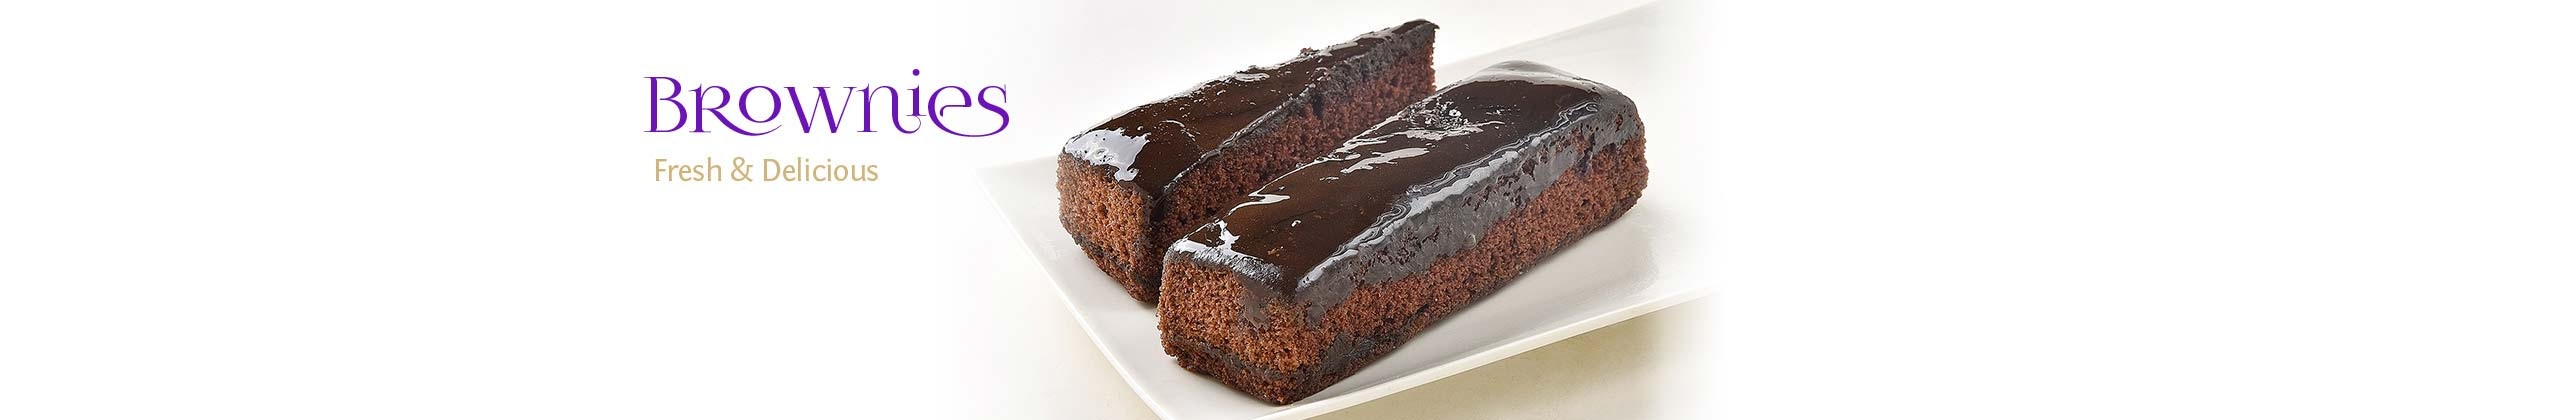 11-Brownies